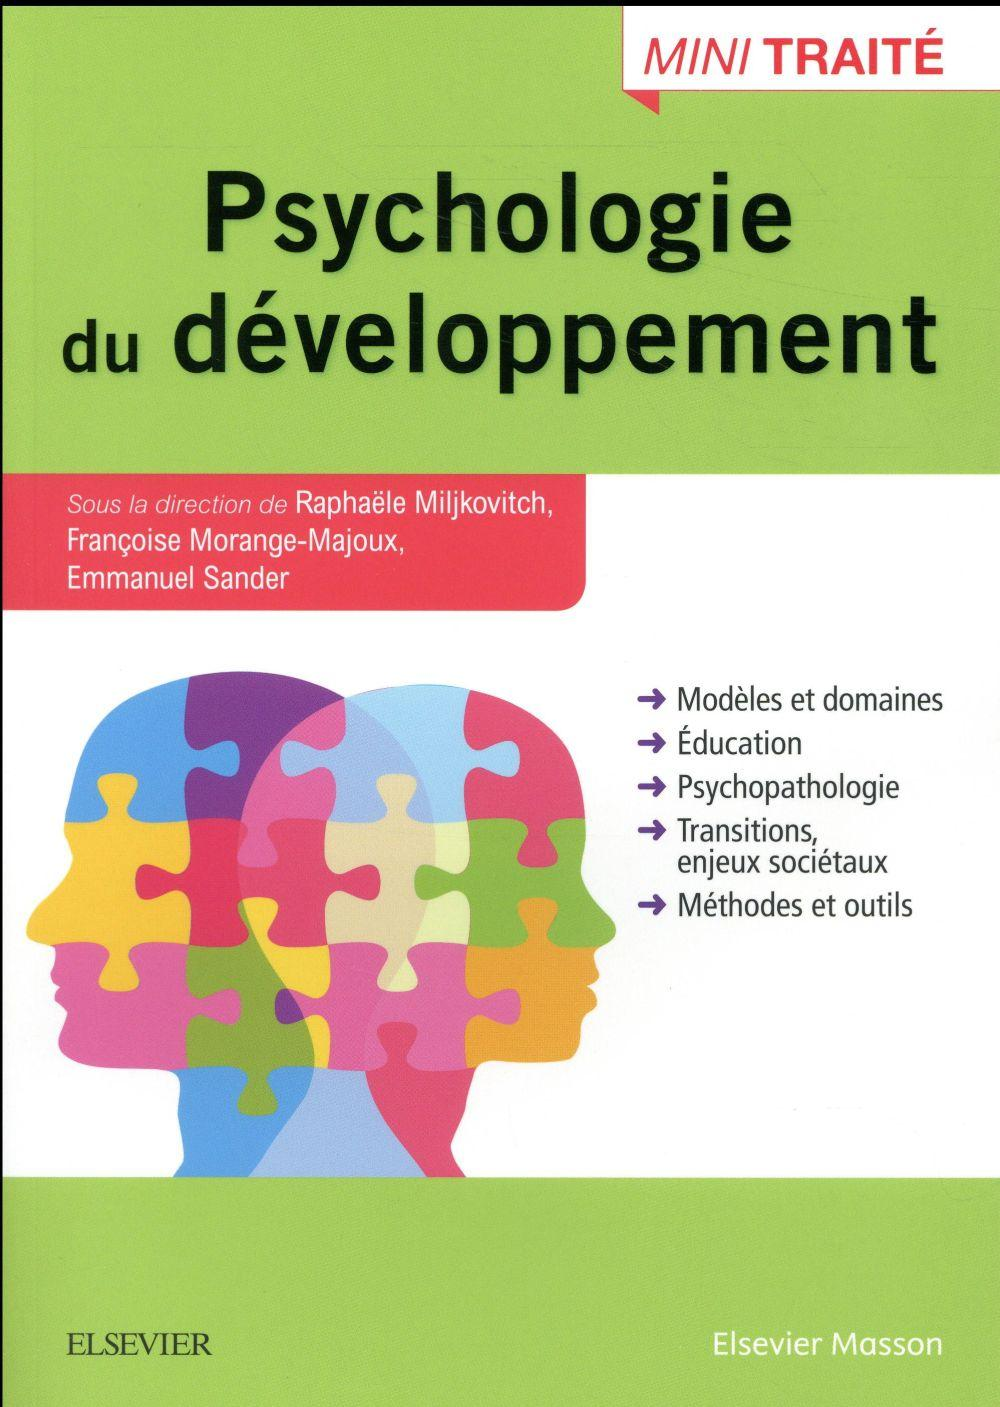 Traite de psychologie du developpement  - Raphaele Miljkovitch